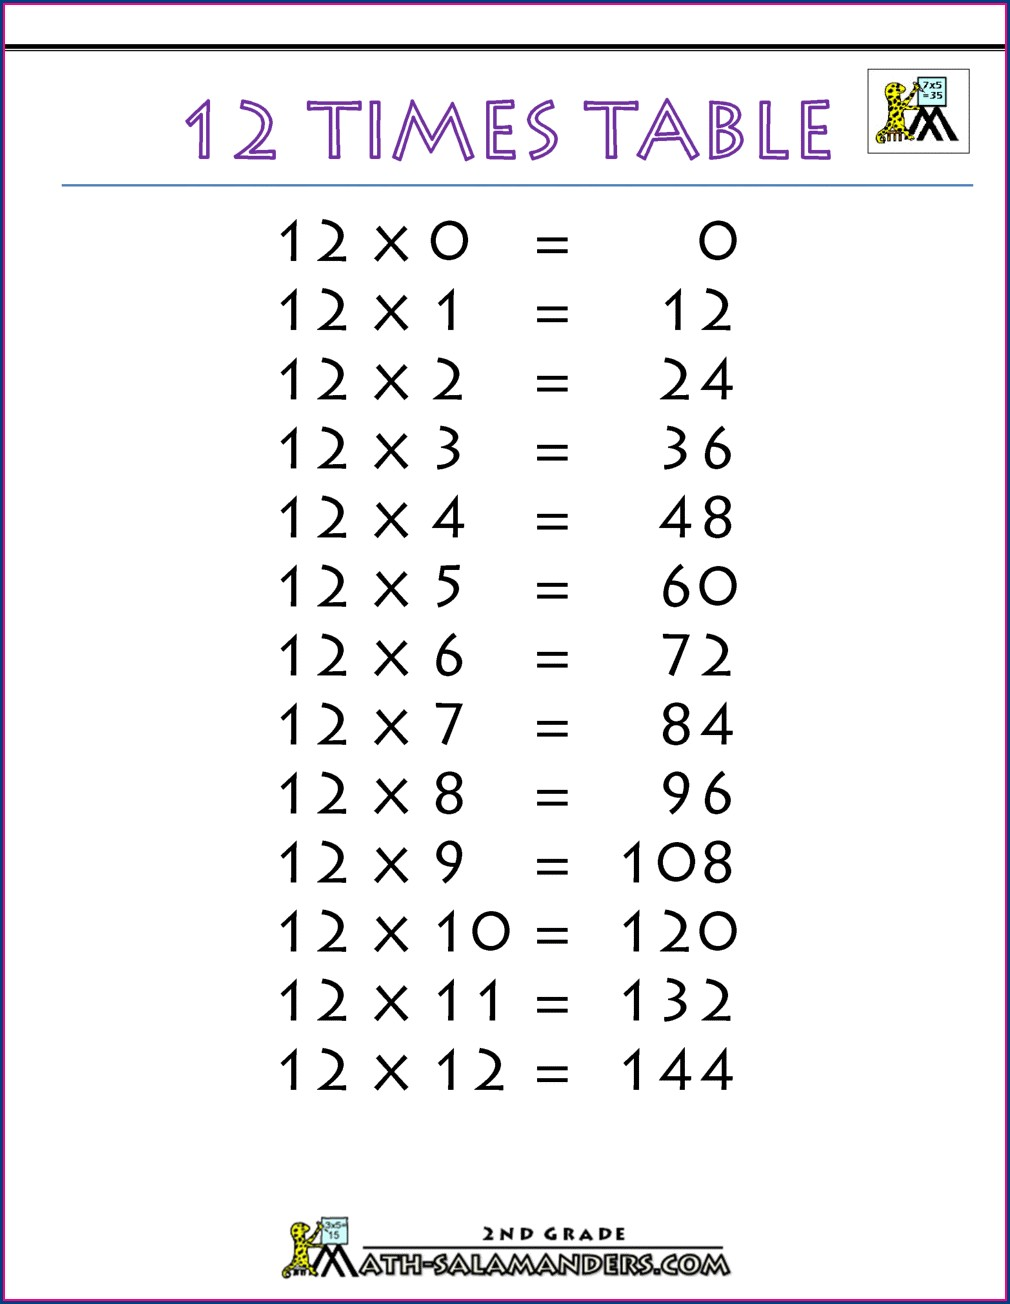 2 Times Table Worksheet Up To 12